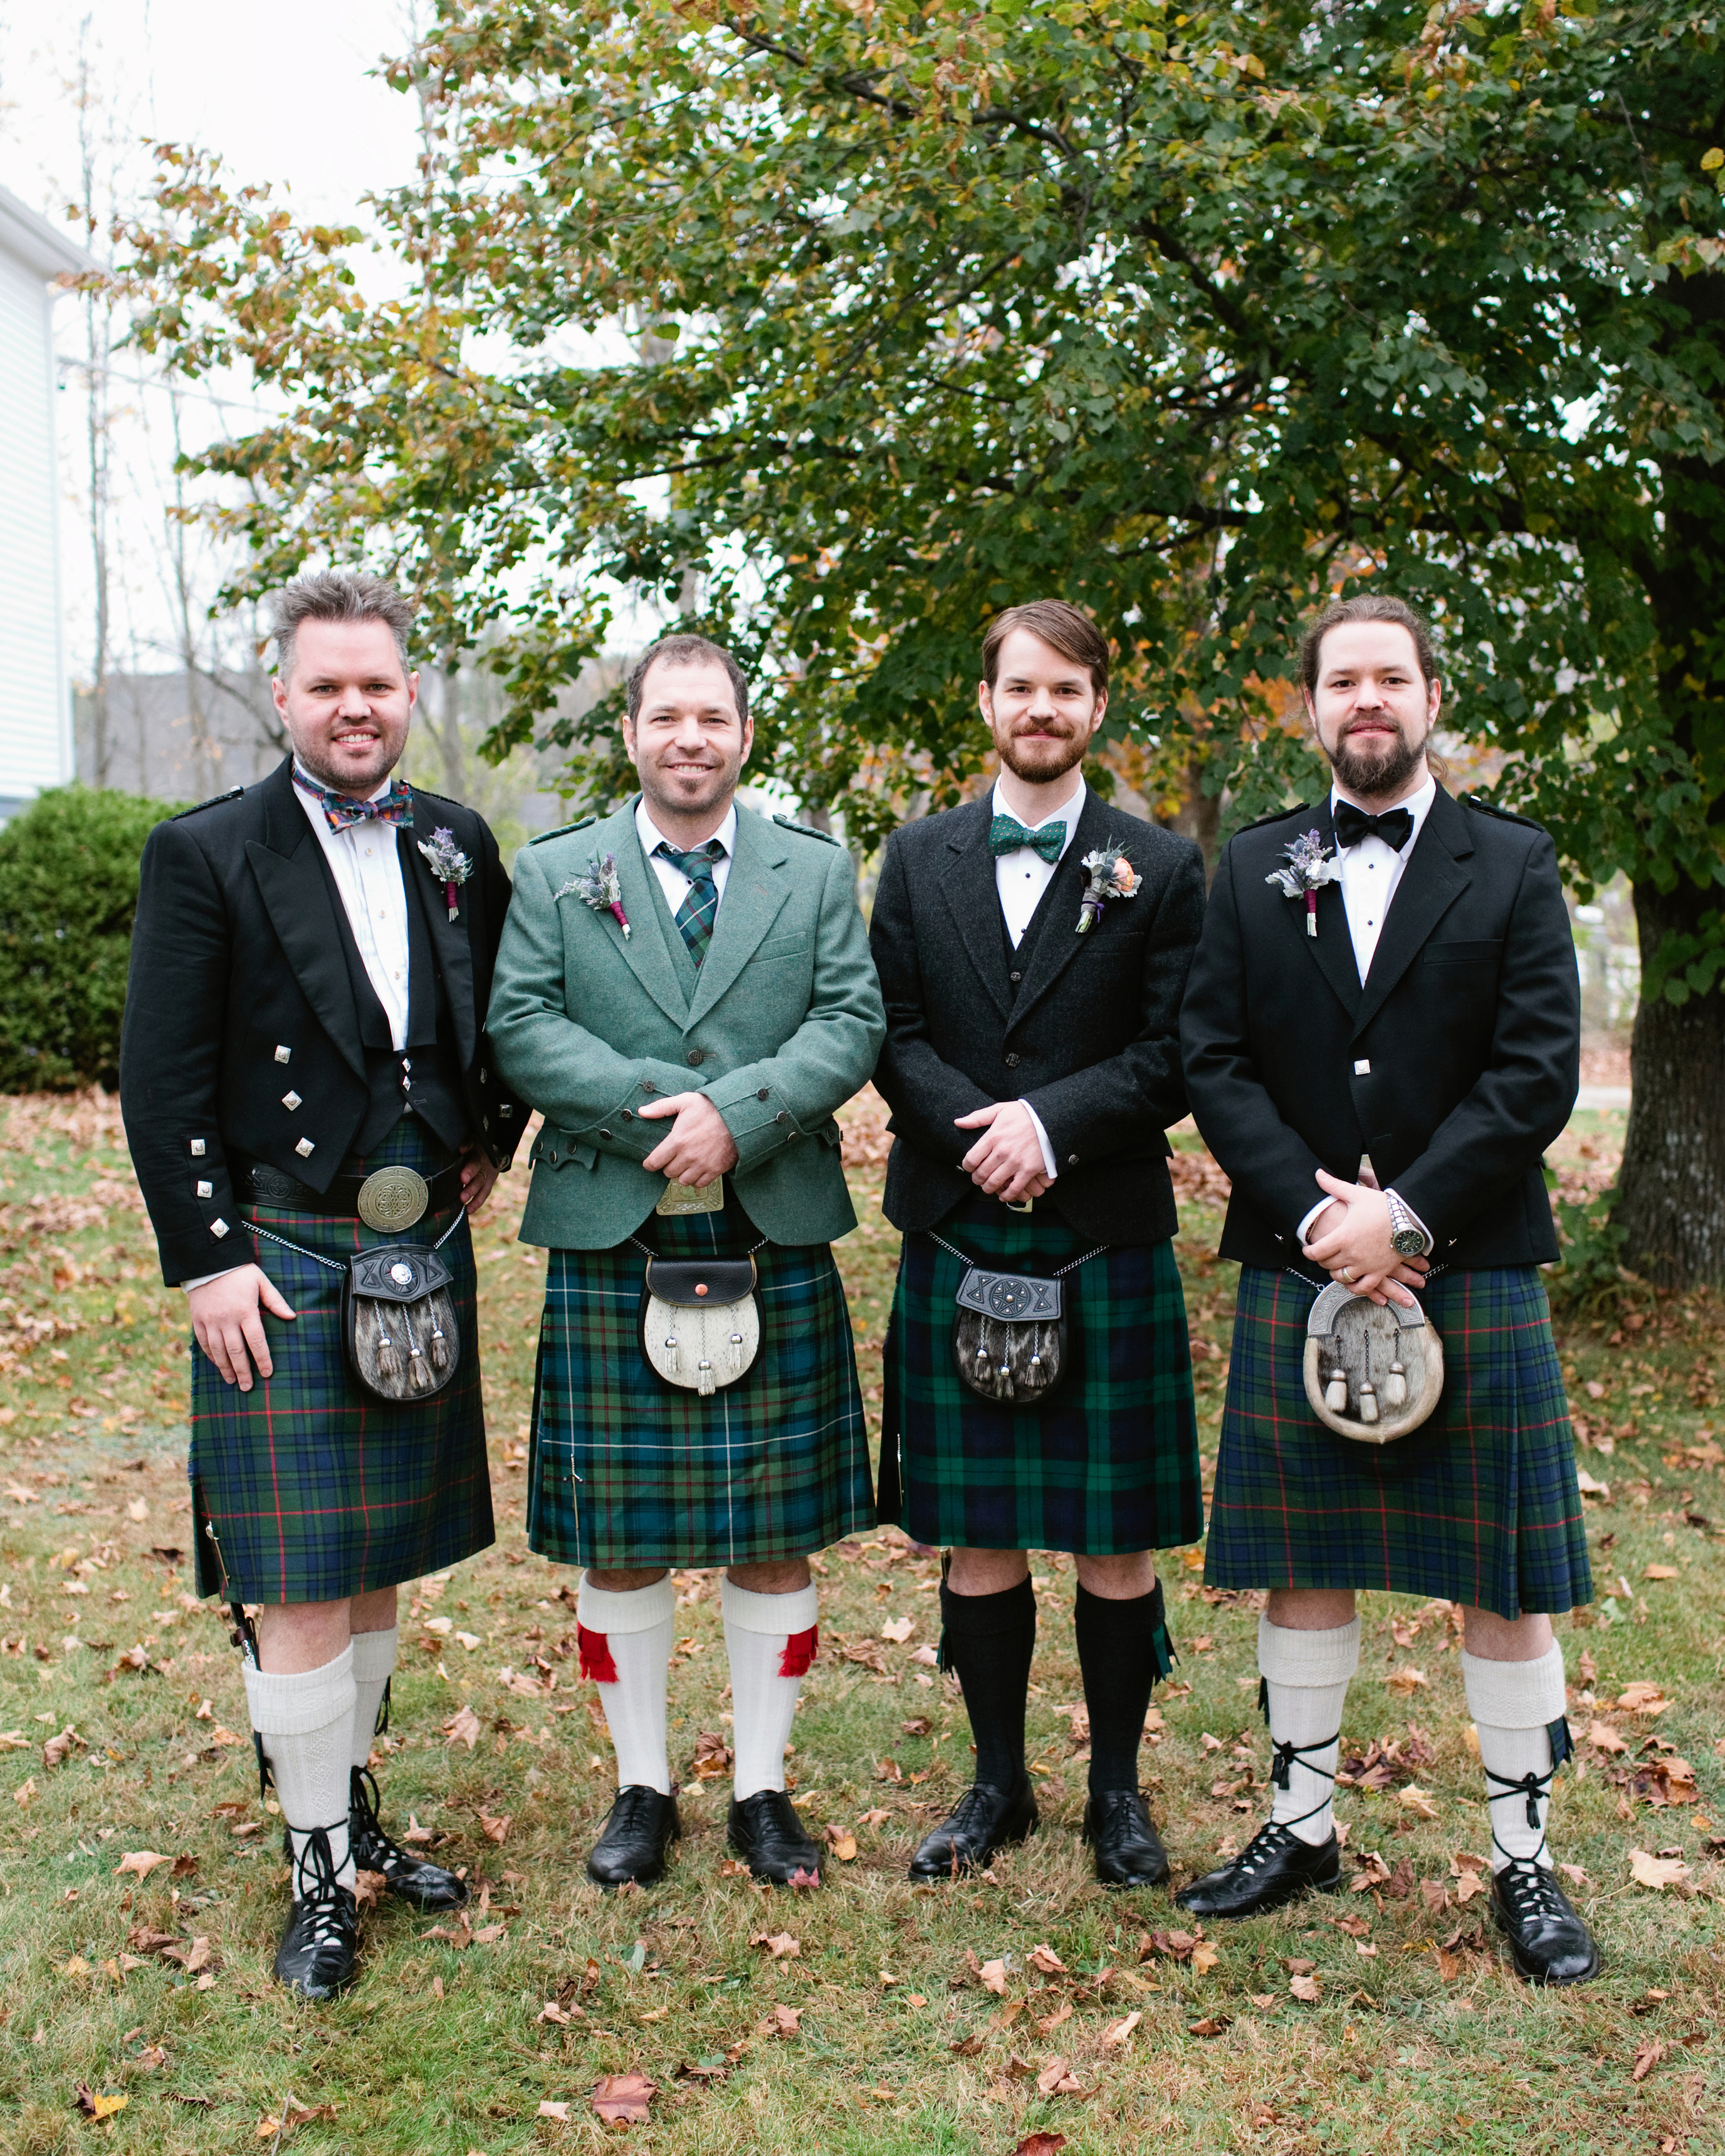 jayme-jeff-wedding-groomsmen-0614.jpg